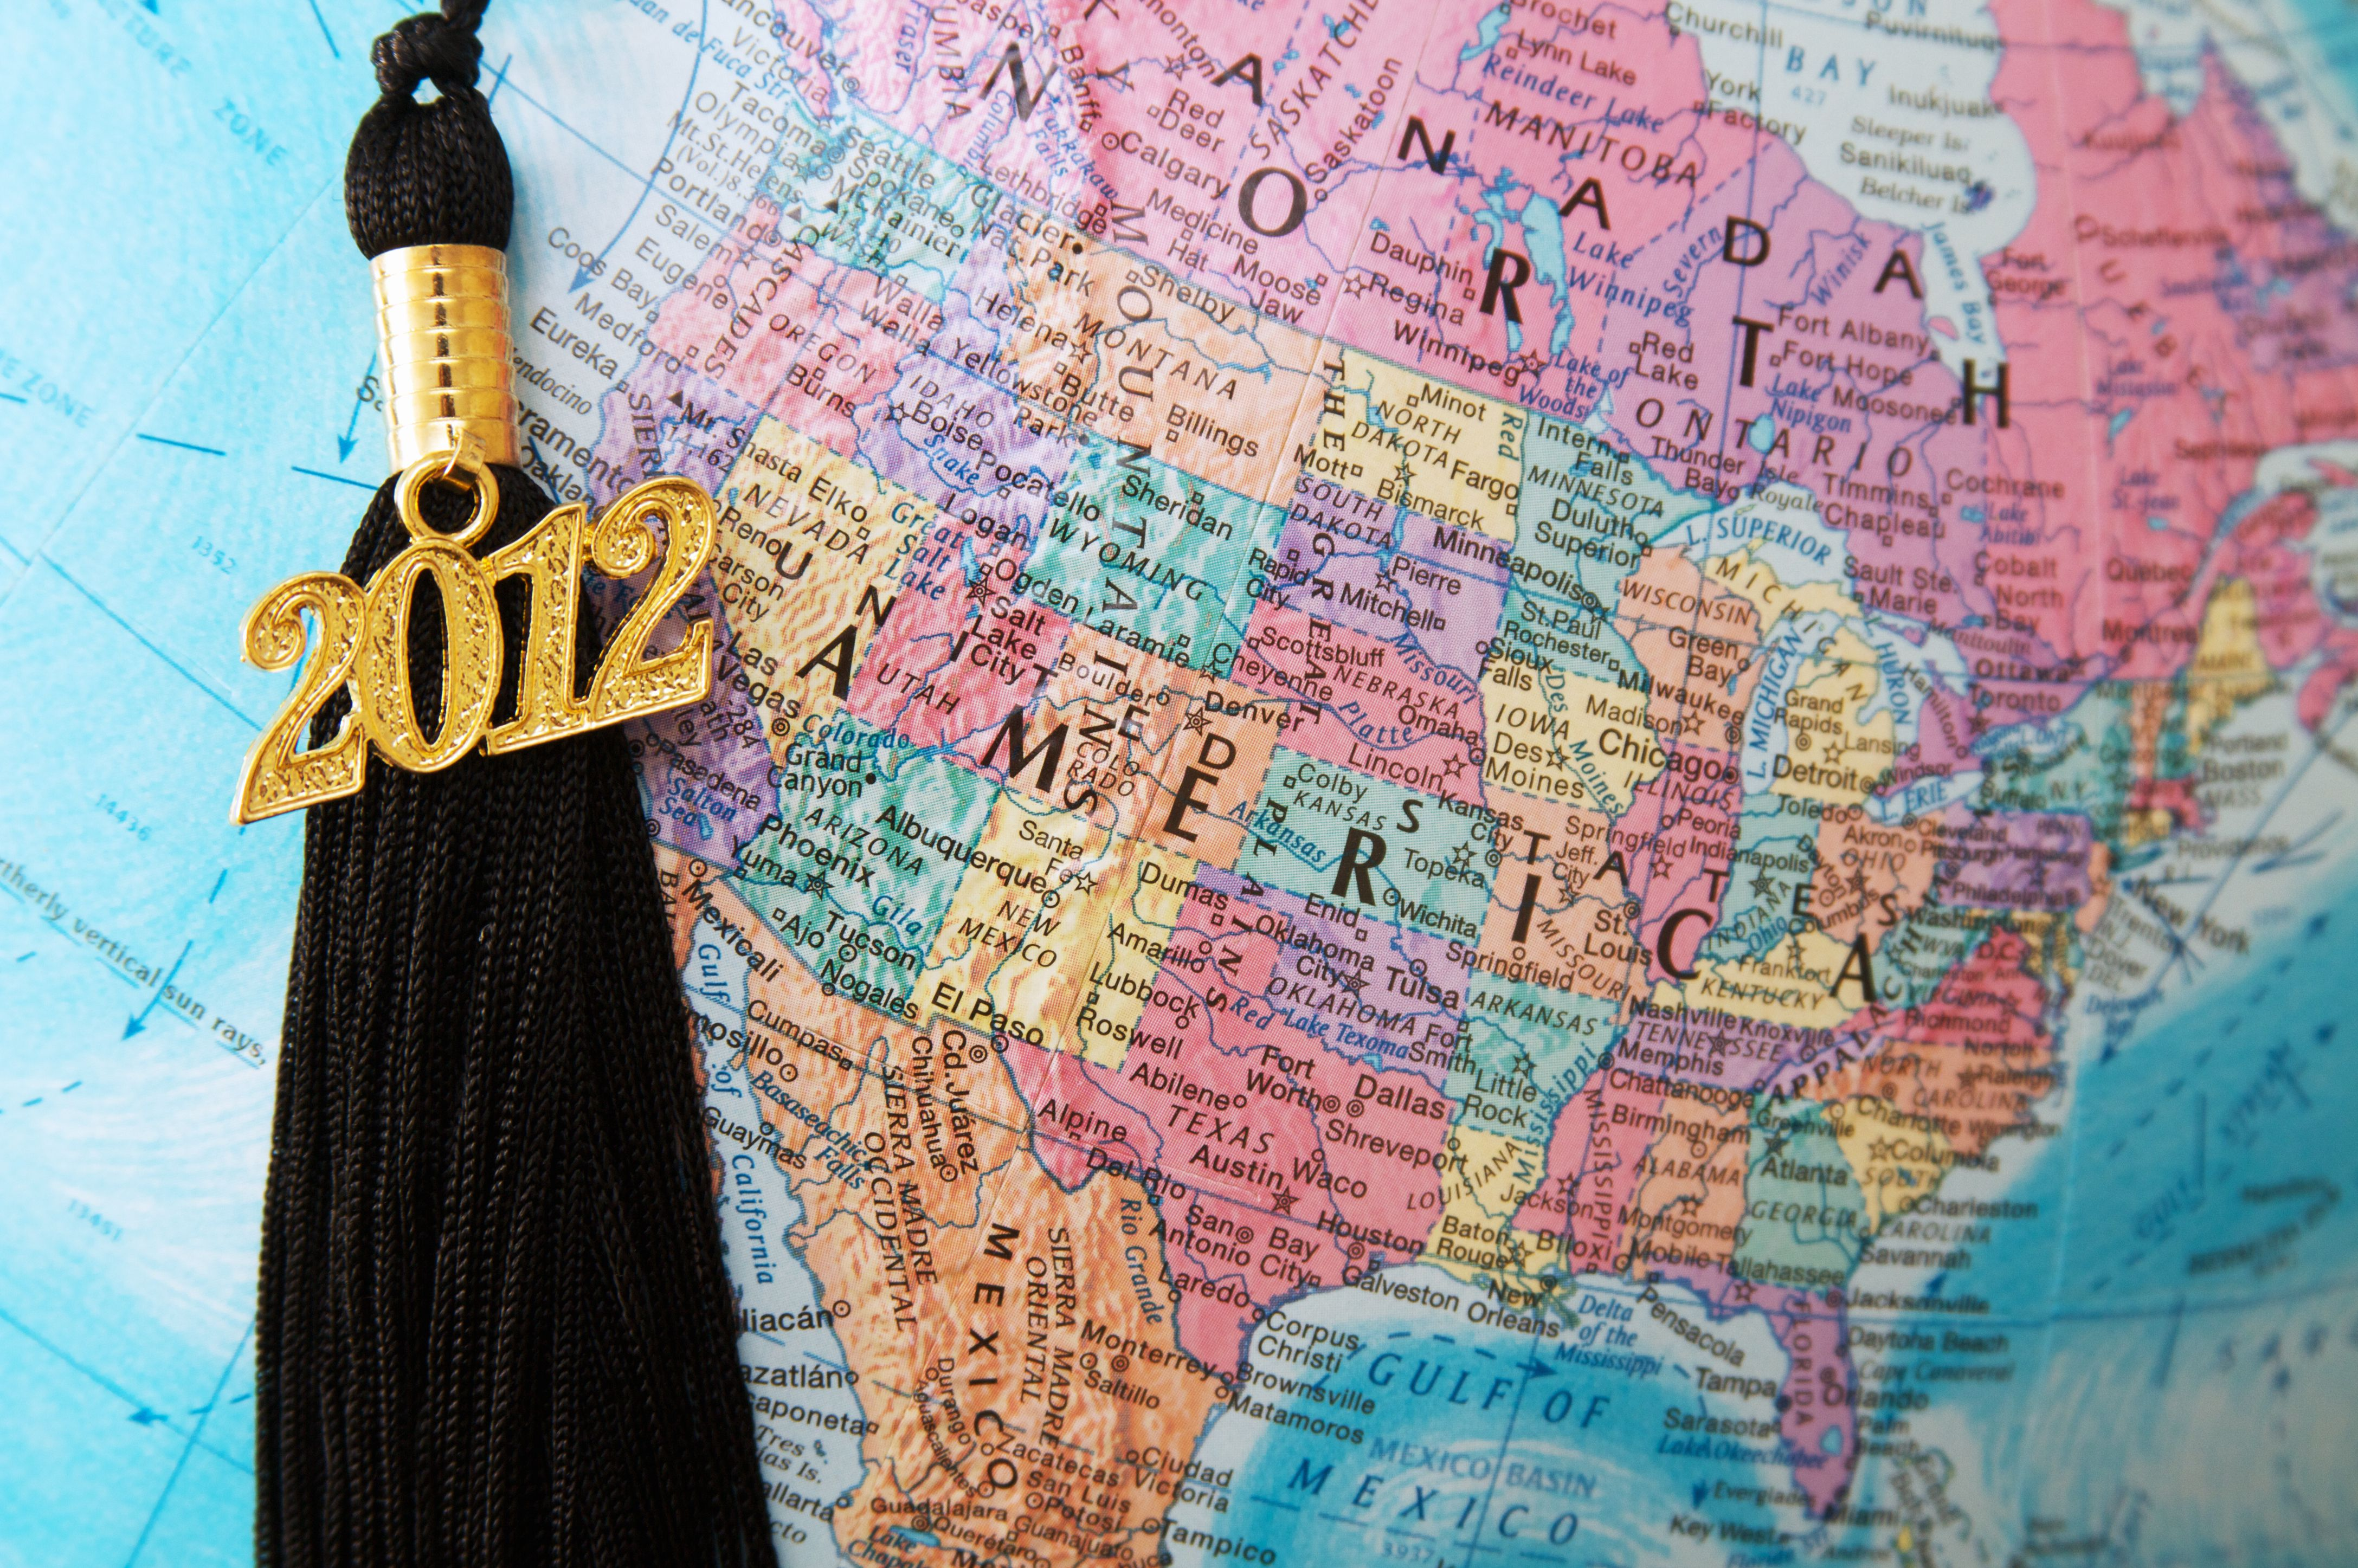 2012 tassel over the North American portion of a globe